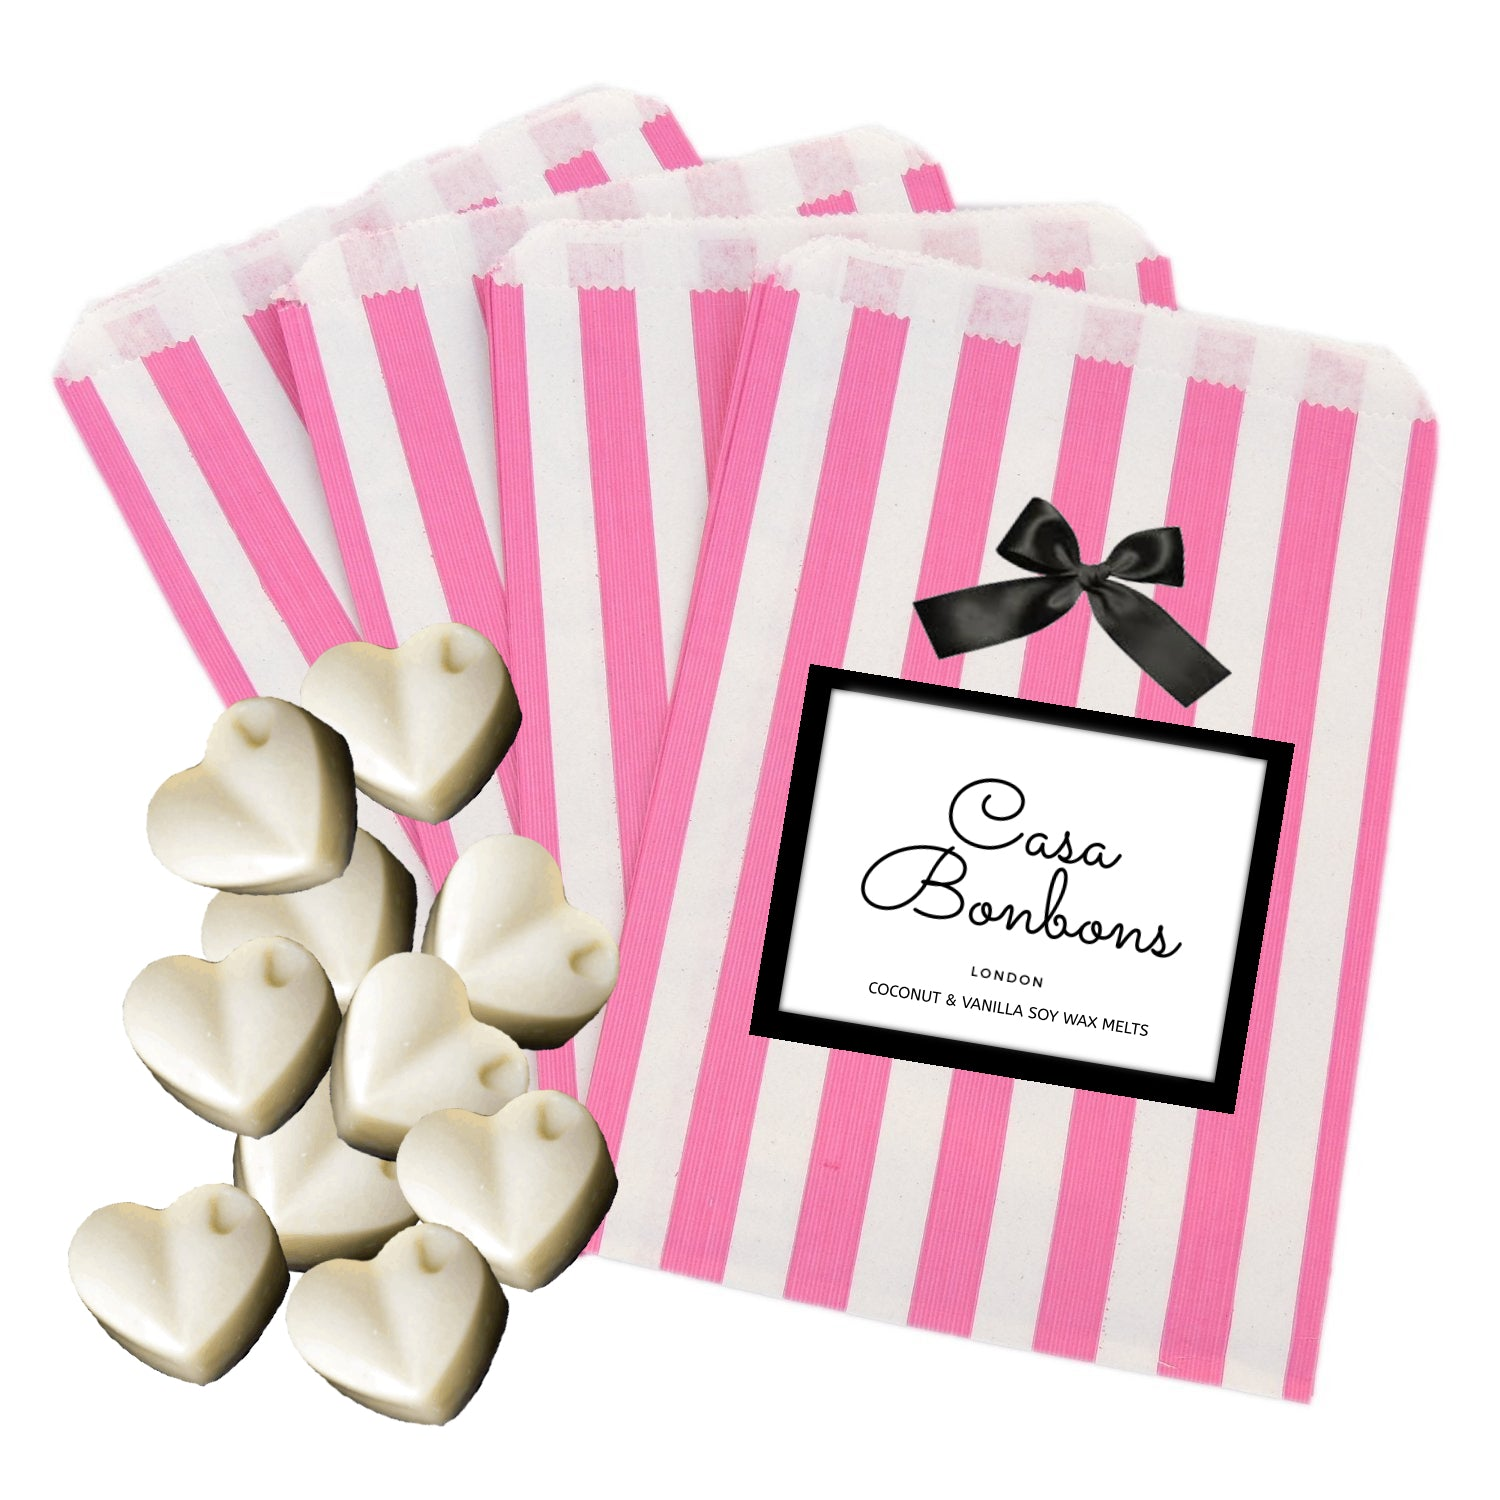 Coconut & Vanilla gentle scented Soy Wax Melts (10 hearts), PRE-ORDER delivery around 15th of December - natoorio